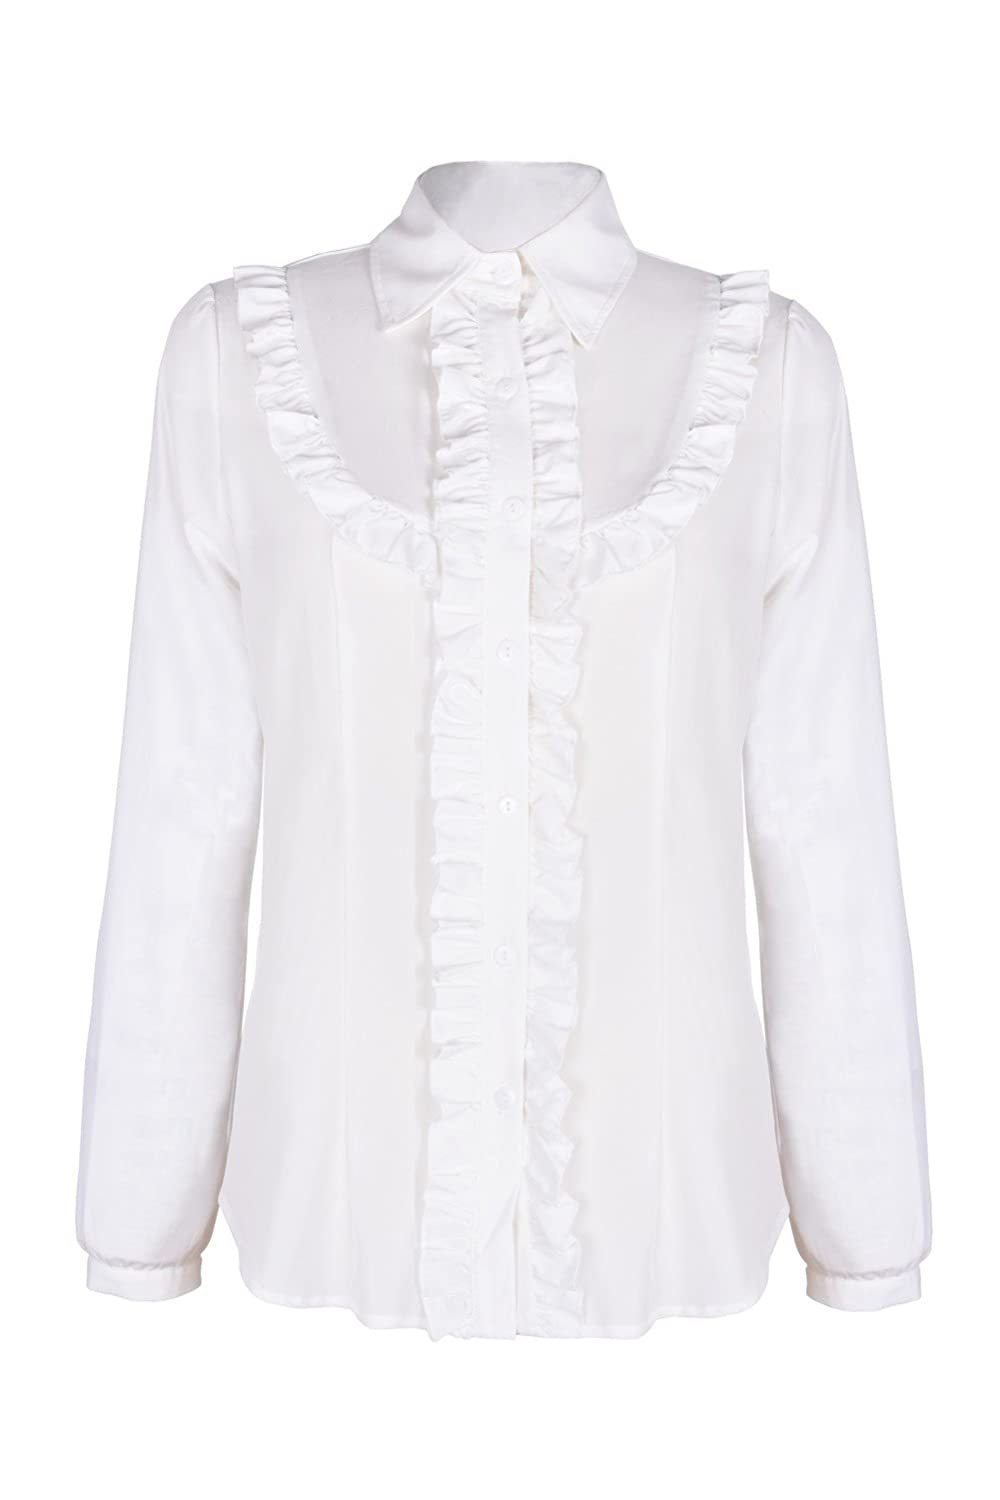 Edwardian Style Blouses  Long Sleeve Shirts Blouse Tops $25.99 AT vintagedancer.com